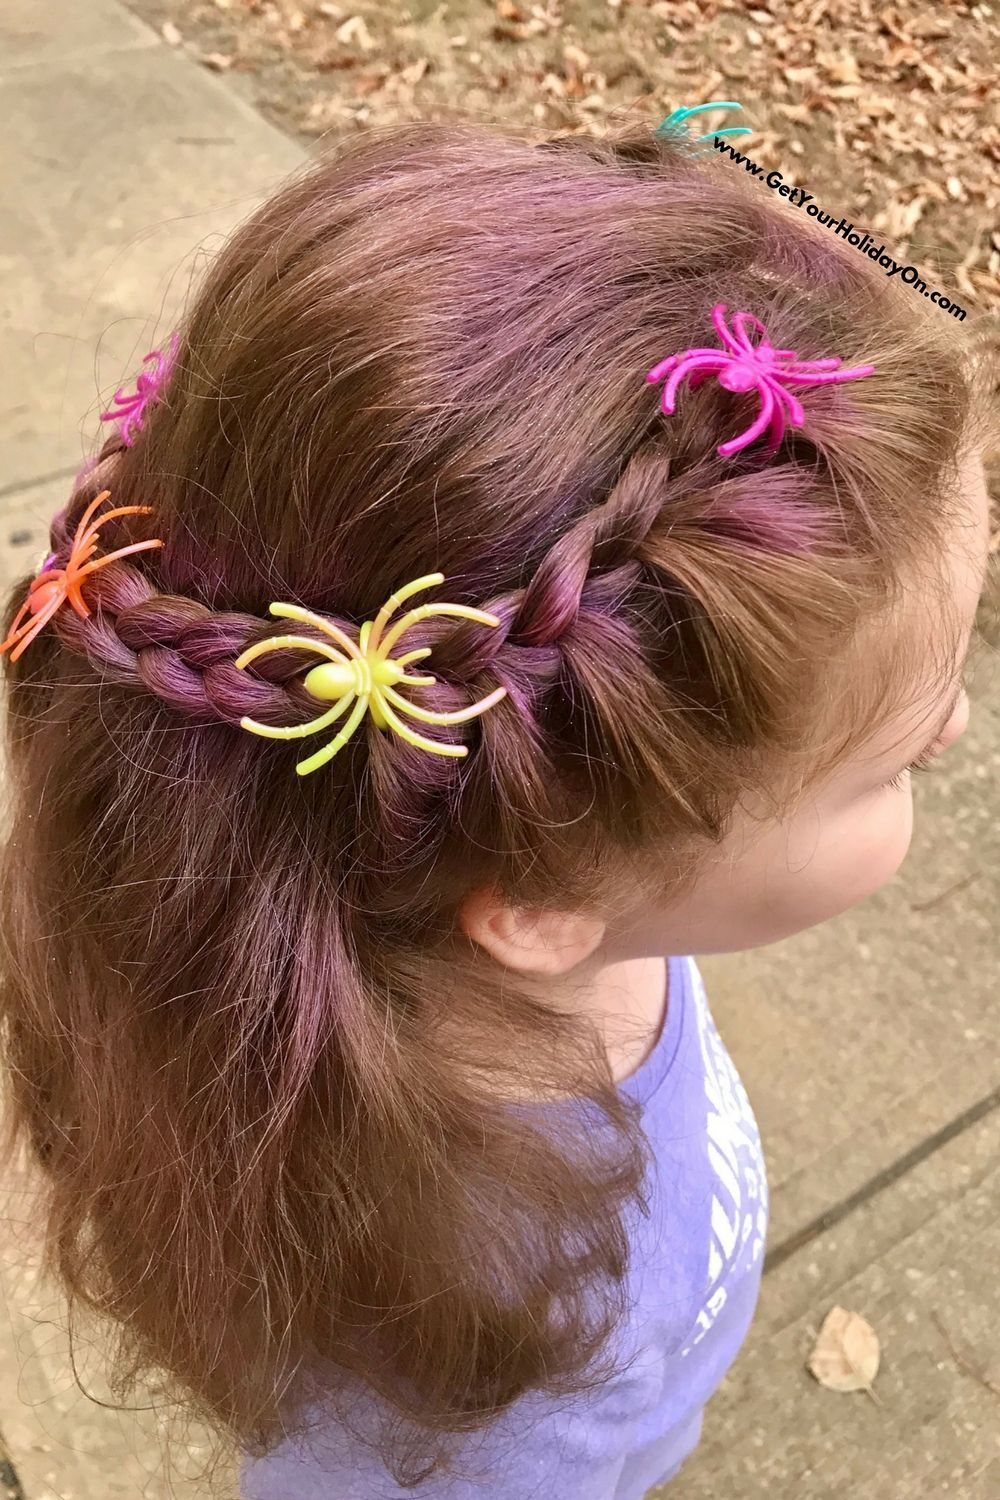 Simple and Easy Crazy Hair for School -Spirit Week | Get Your Holiday On #crazyhairdayatschoolforgirlseasy Crazy Hair Day At School Ideas | Get Your Holiday On #crazyhairday Simple and Easy Crazy Hair for School -Spirit Week | Get Your Holiday On #crazyhairdayatschoolforgirlseasy Crazy Hair Day At School Ideas | Get Your Holiday On